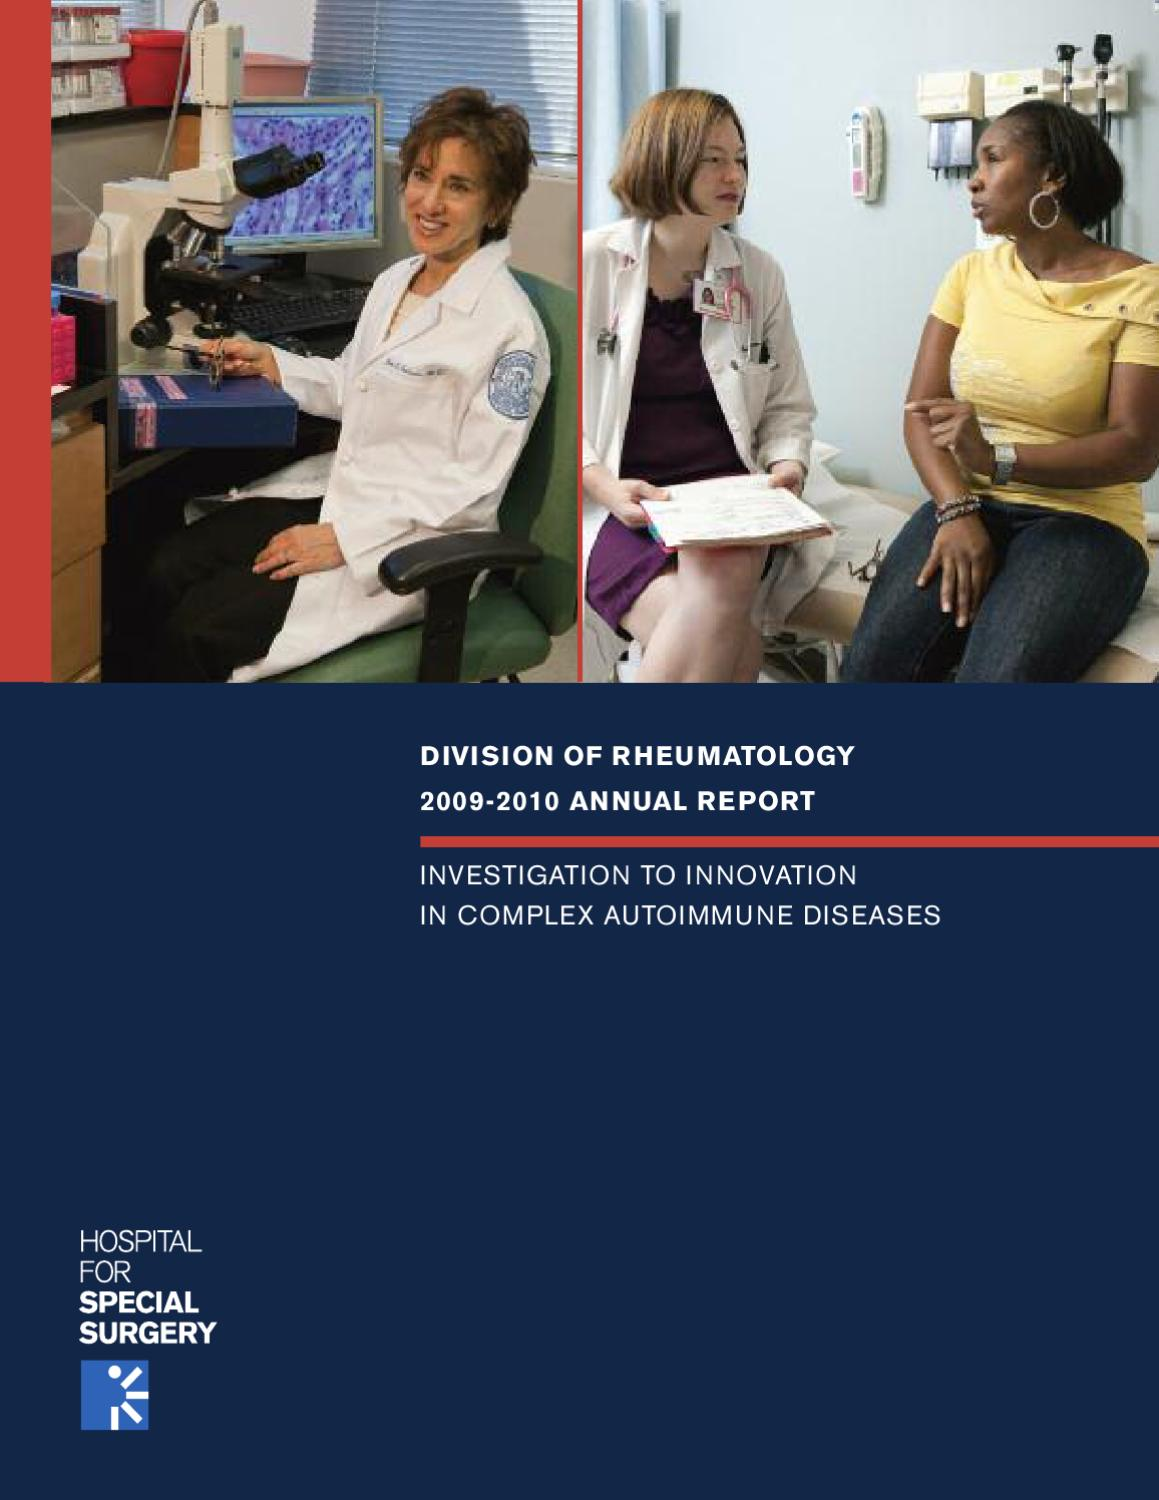 Division of Rheumatology 2009-2010 Annual Report